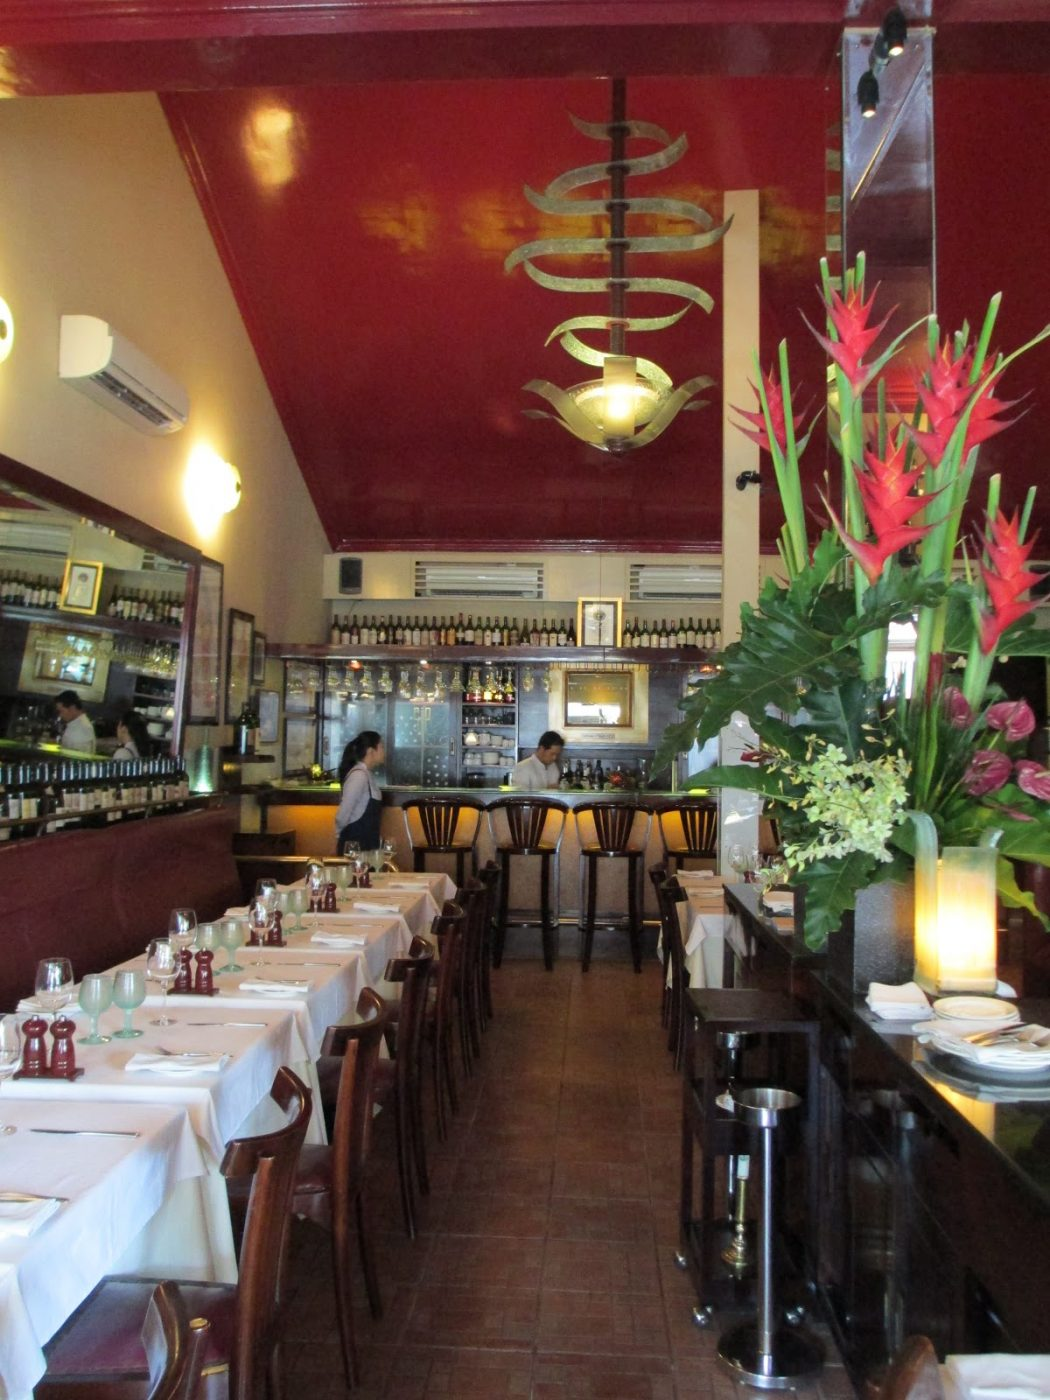 IMG_04631 The Ugly Restaurant Interior Design Makes You Lose Clients